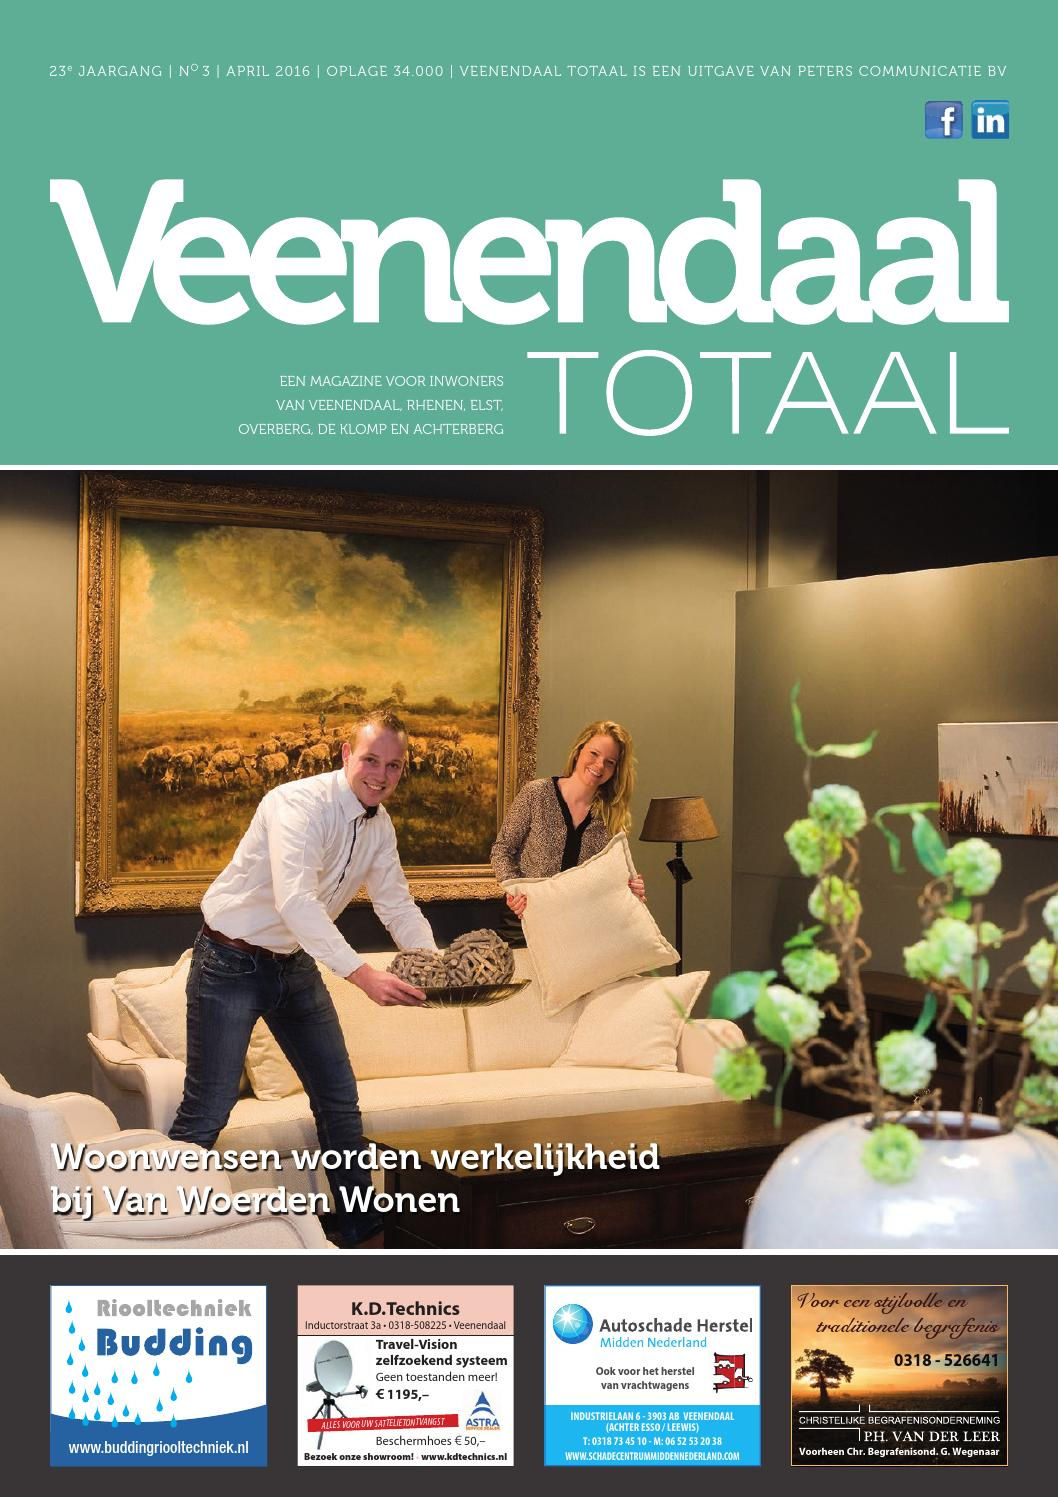 Veenendaal totaal april 2016 online by peters communicatie   issuu